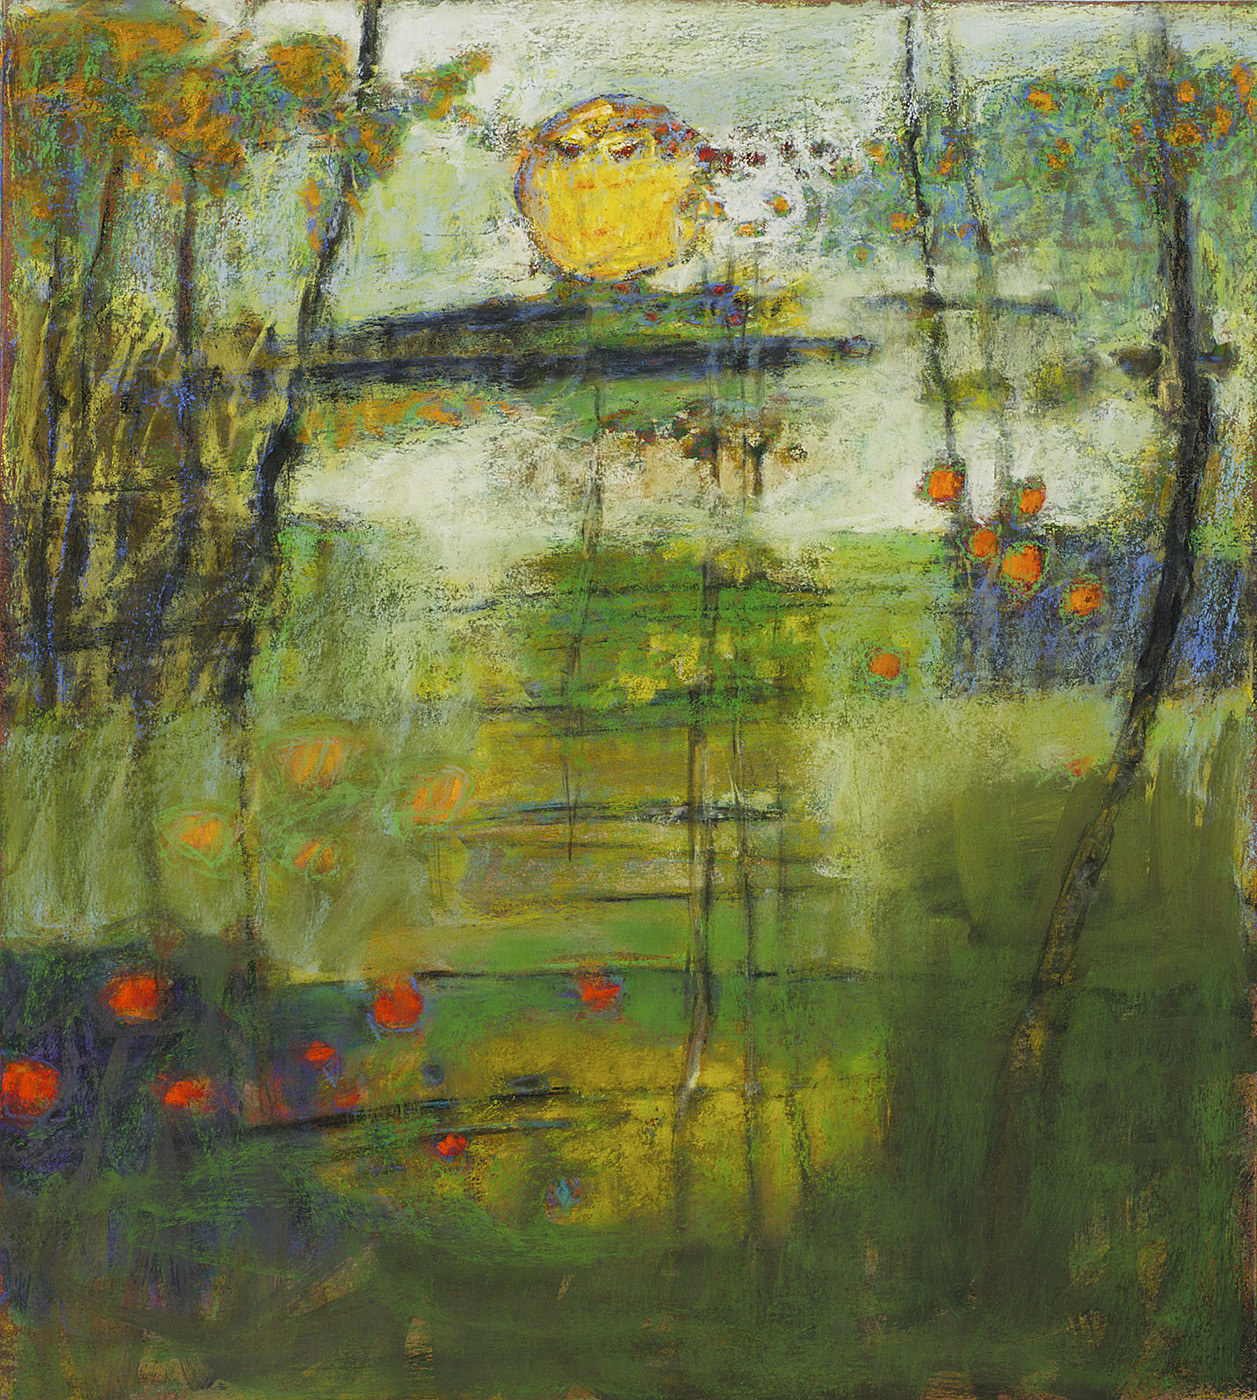 Revealing Structure   | pastel on paper | 20 x 18"